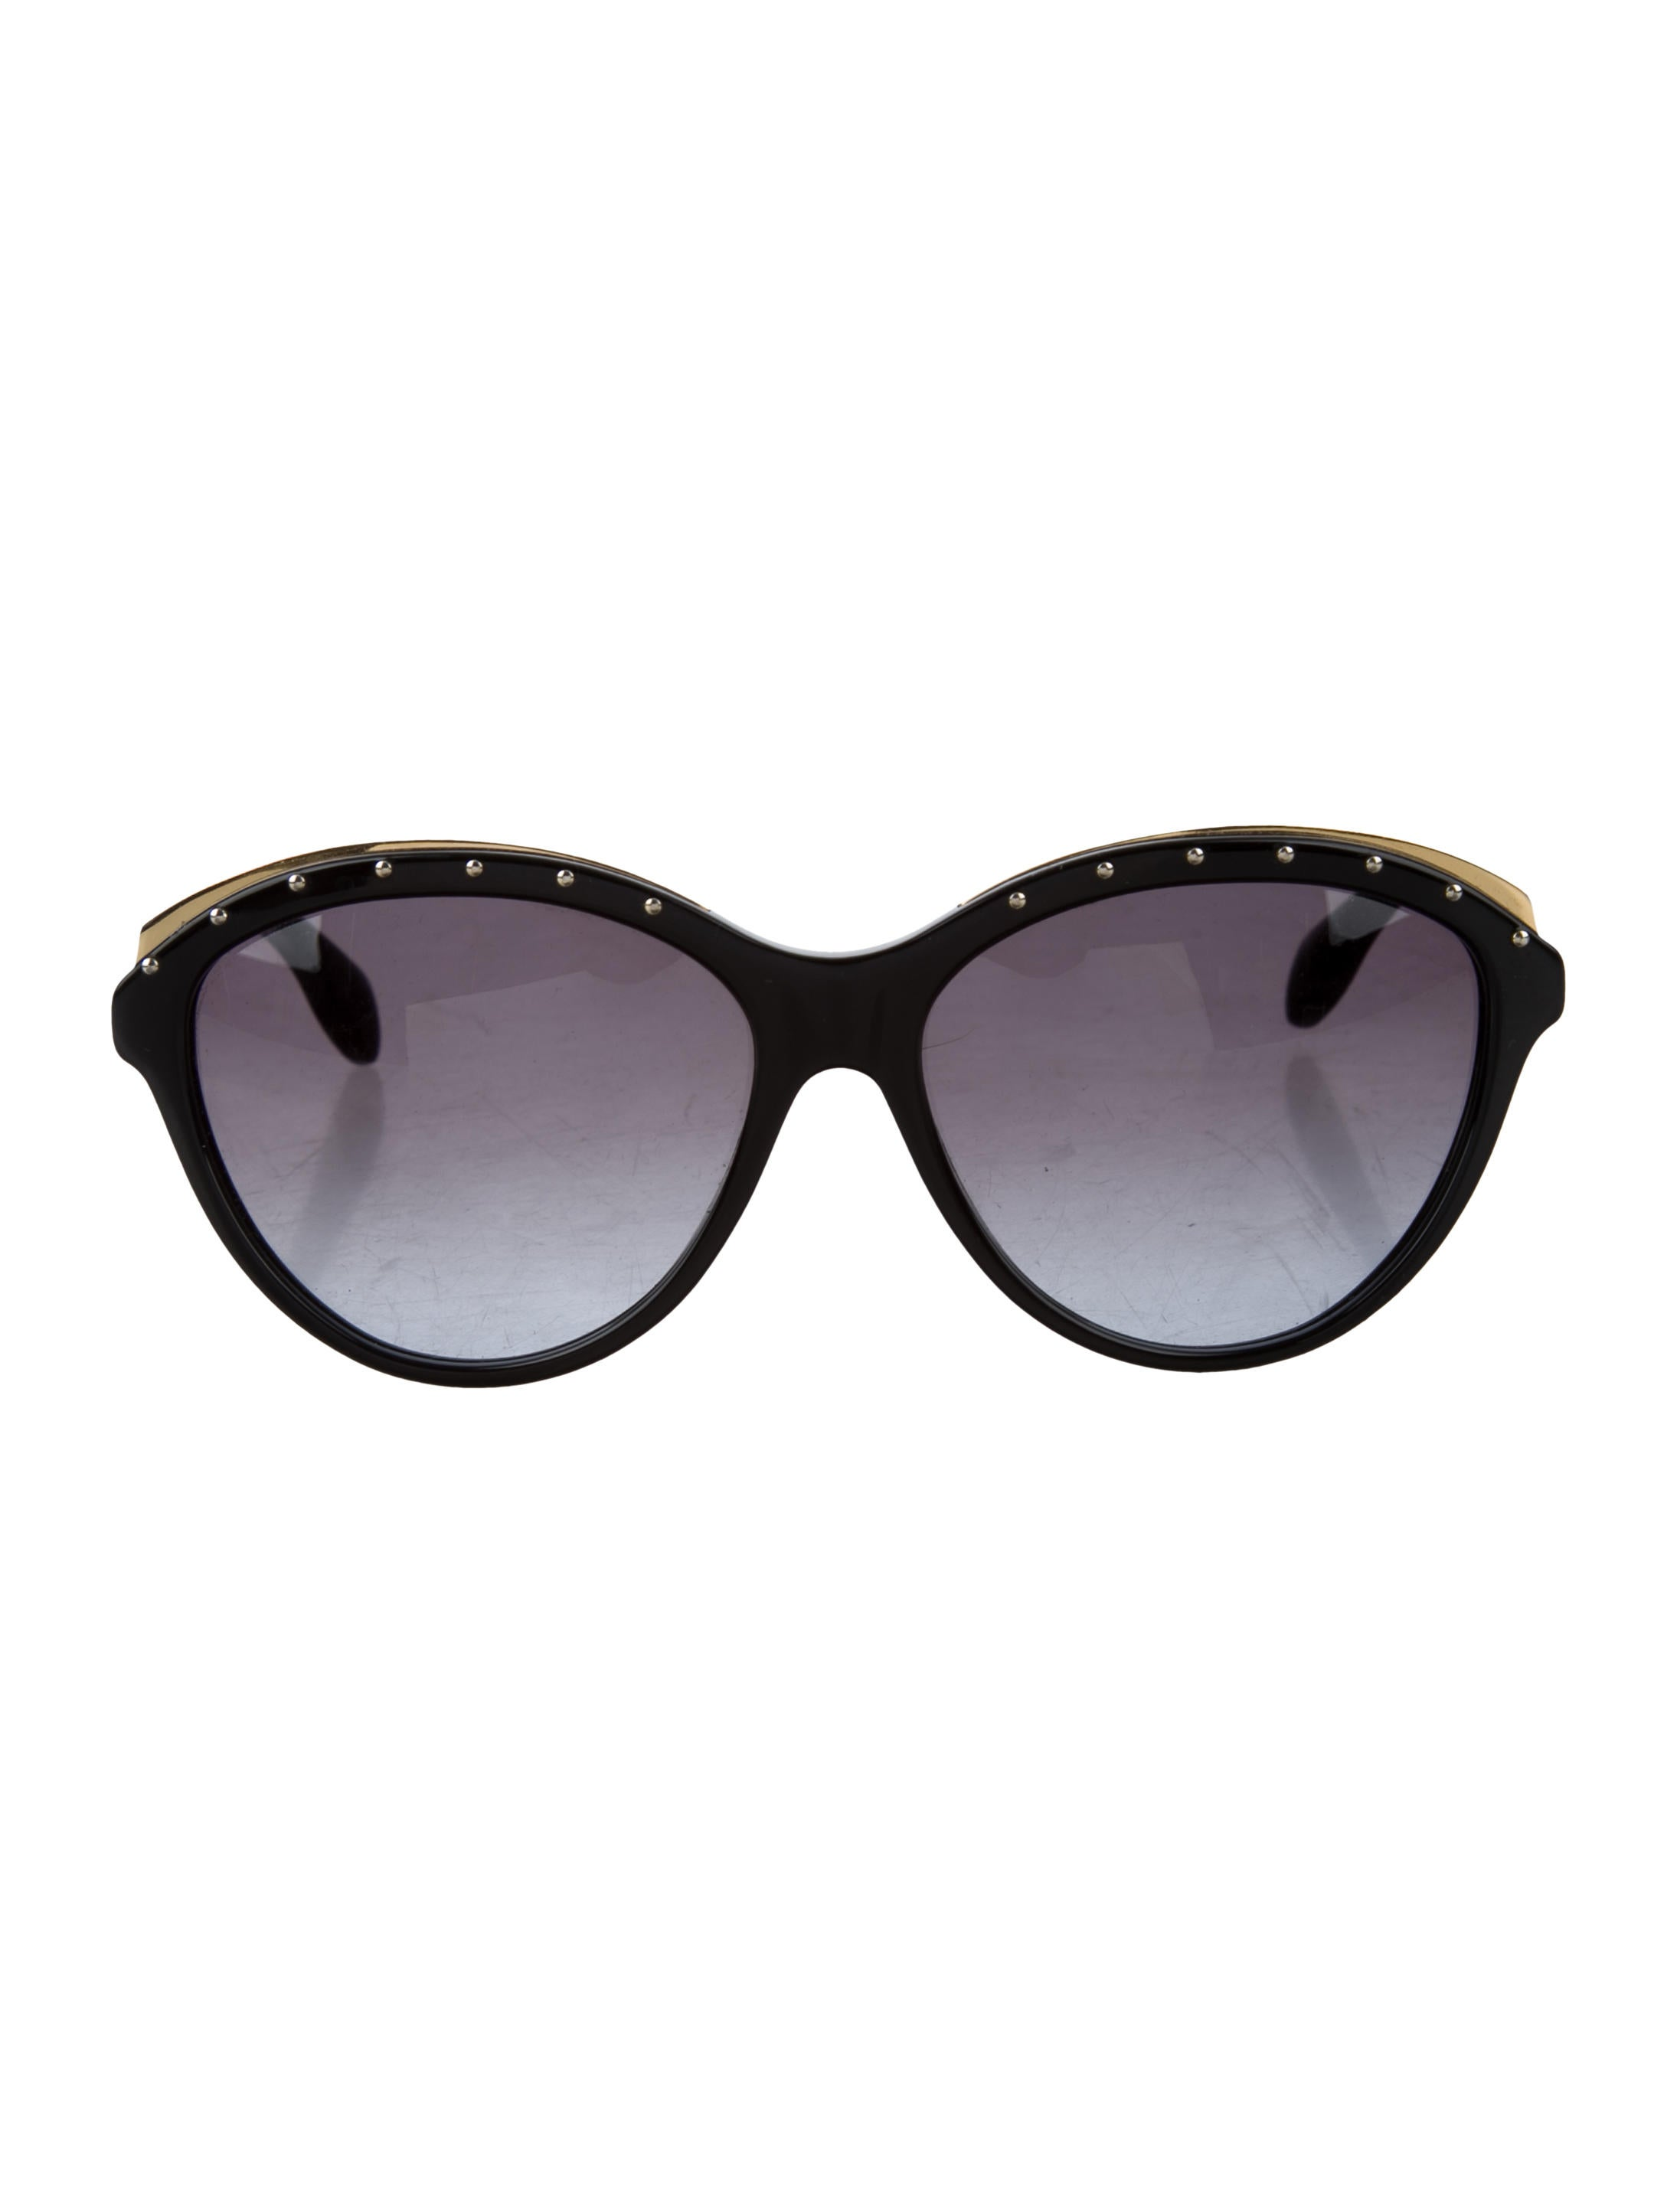 5e164d8d95 Alexander McQueen Studded Cat-Eye Sunglasses - Accessories ...